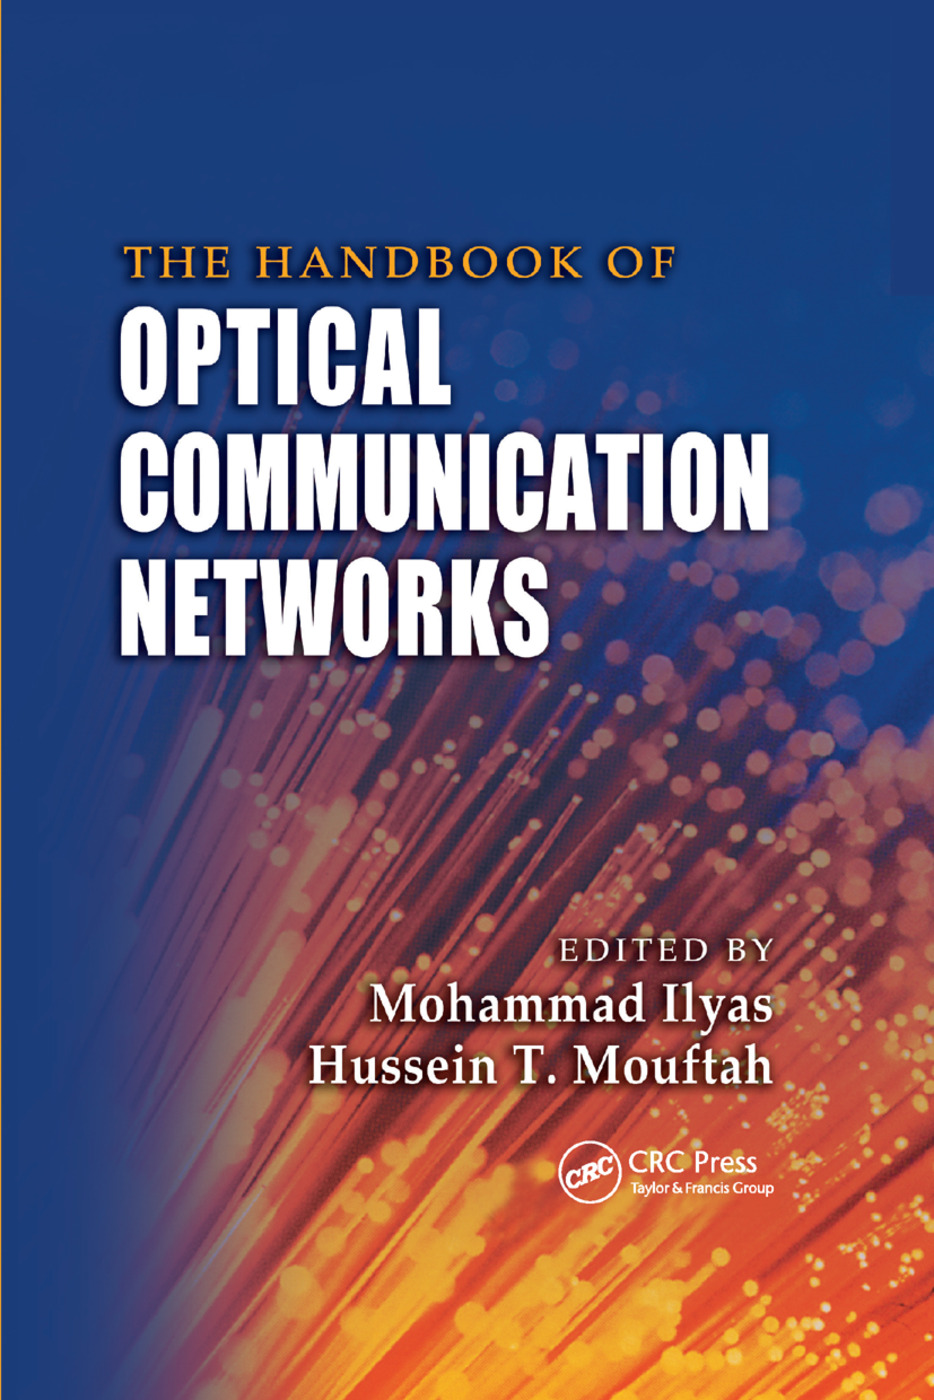 The Handbook of Optical Communication Networks: 1st Edition (Paperback) book cover